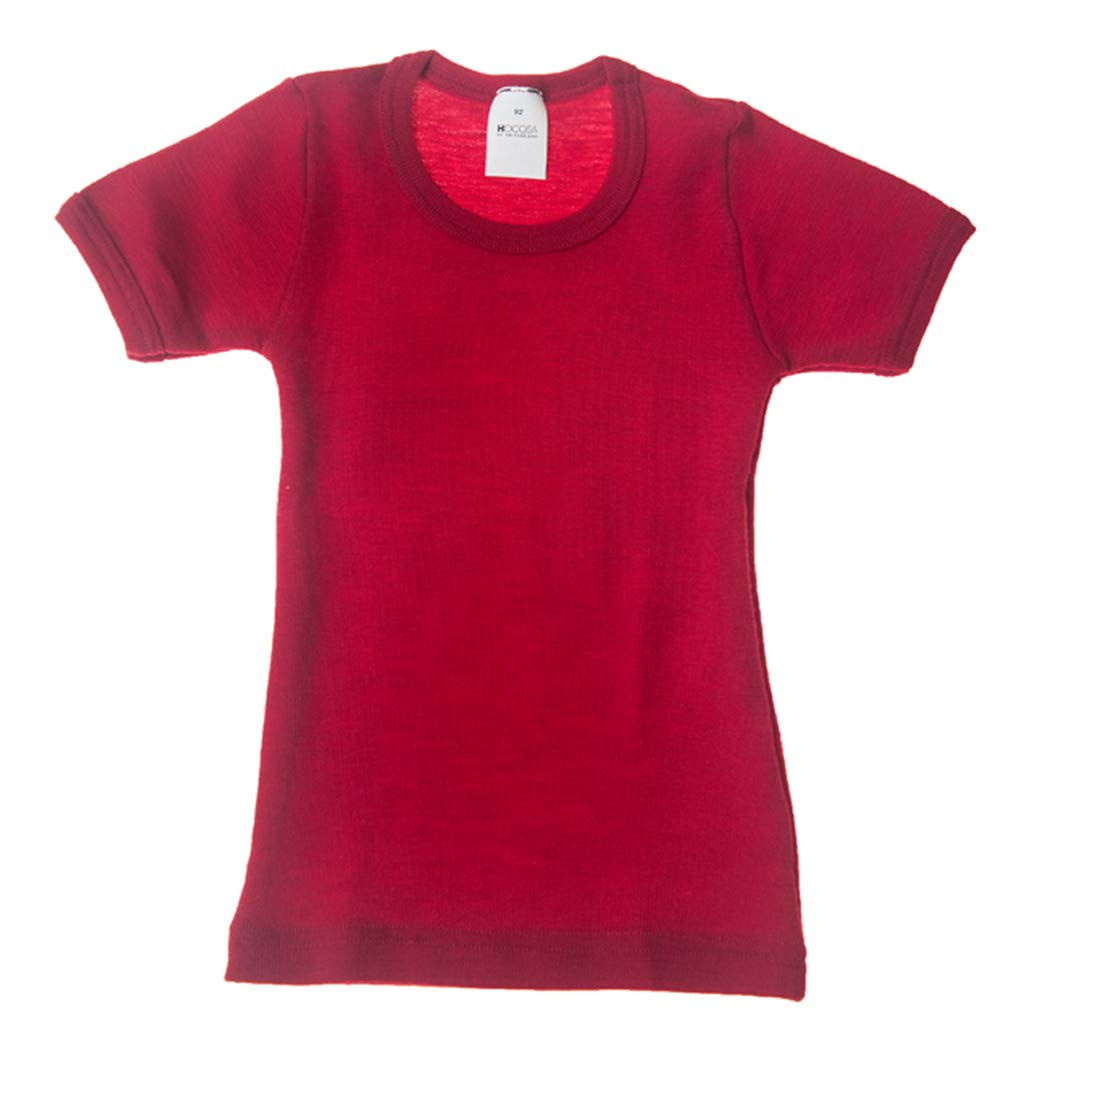 Hocosa of Switzerland Little Kids Organic Wool Short-Sleeved Undershirt, Solid Red, s.104/4 yr by Hocosa of Switzerland